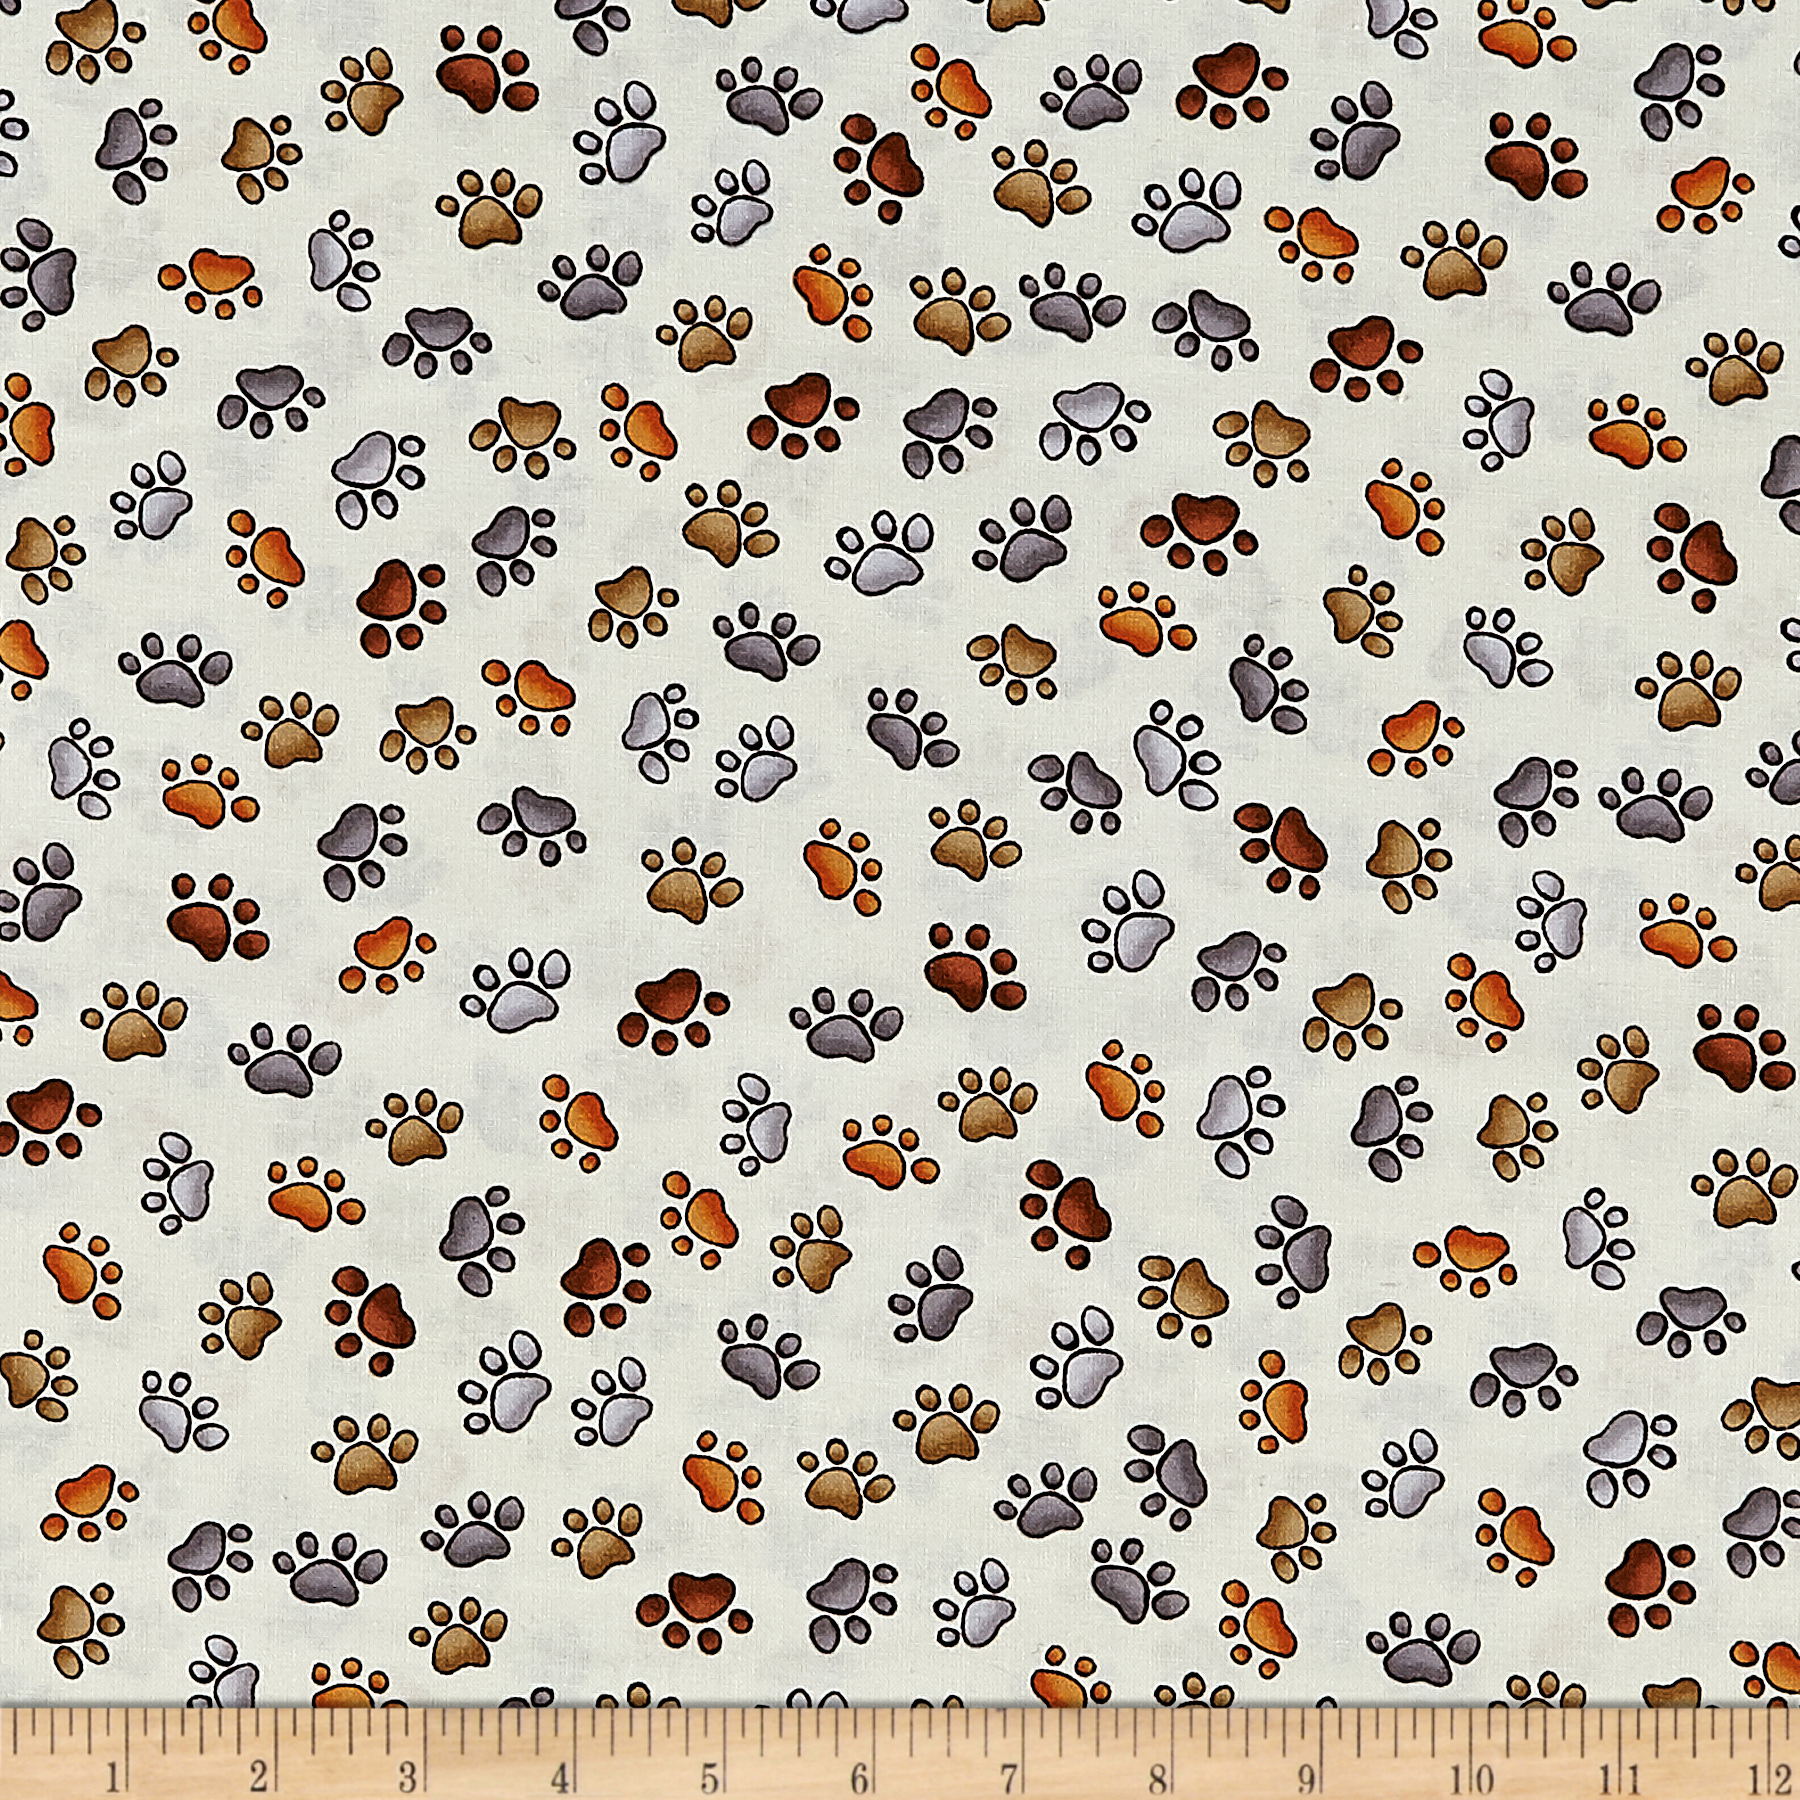 Loralie Designs Dear Doggie Delight Puppy Paws Bone Fabric